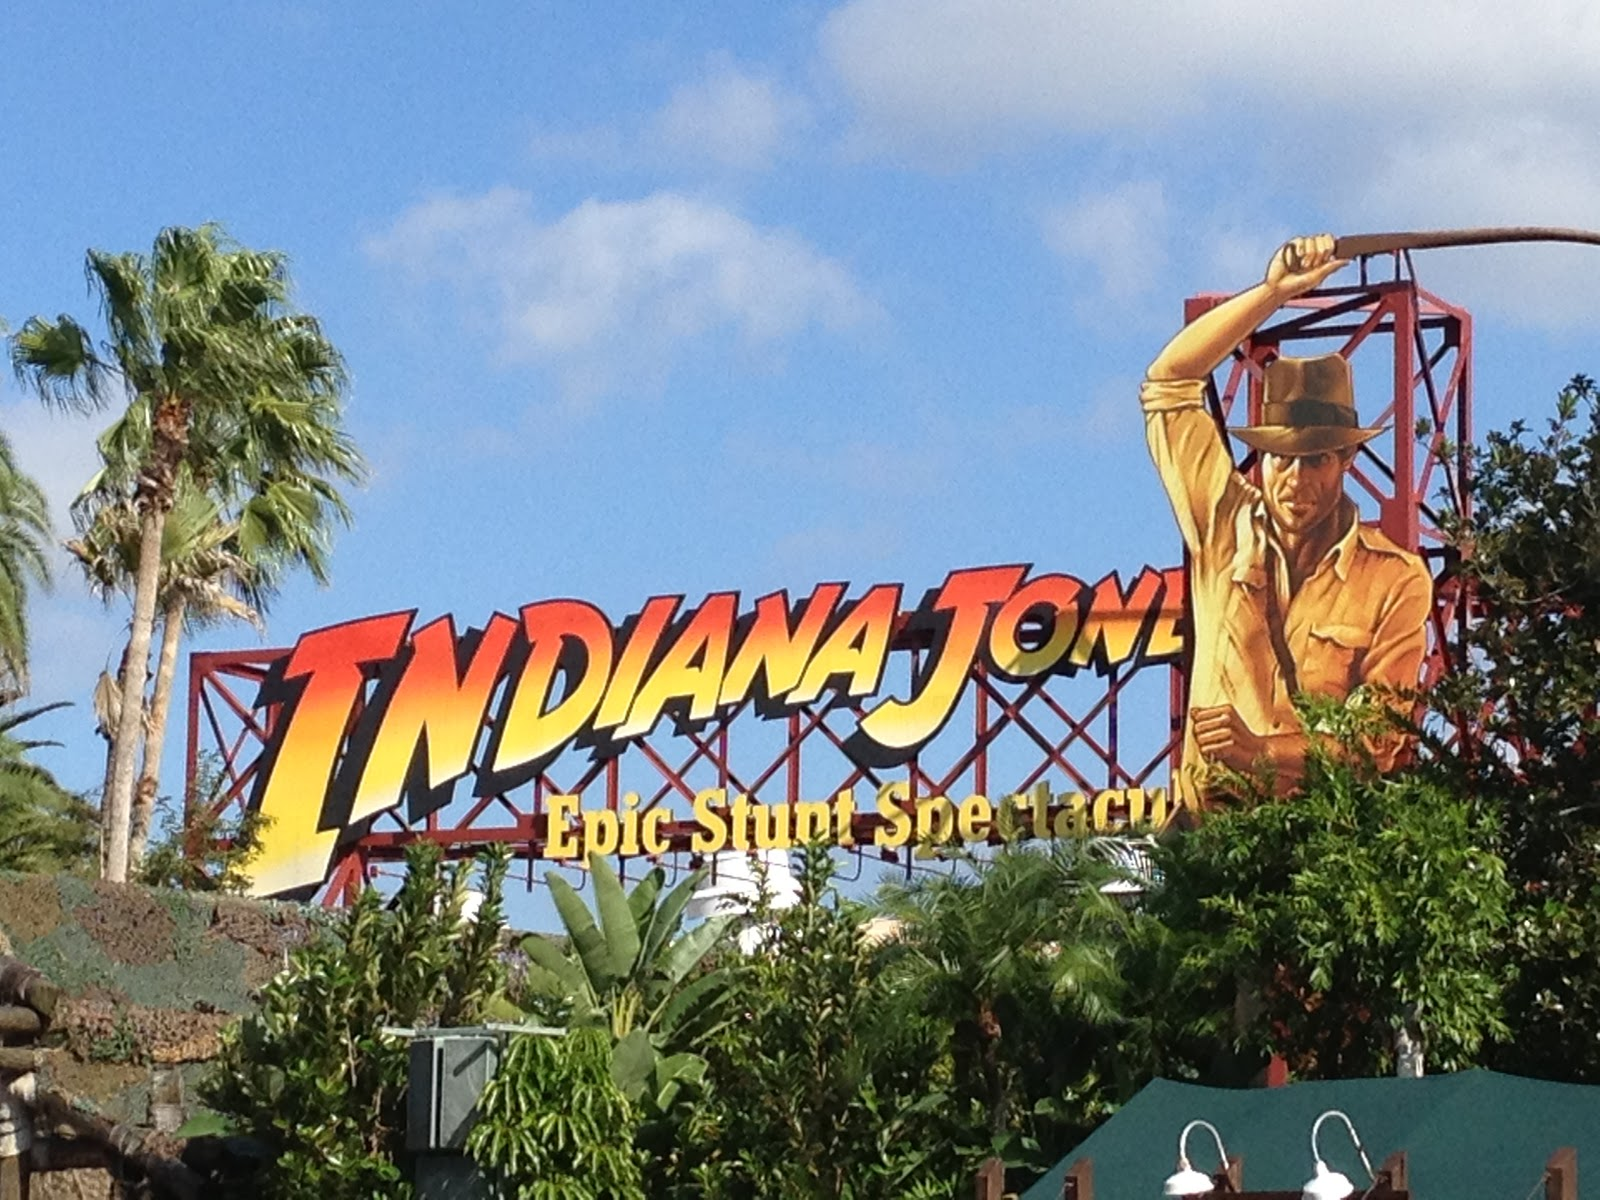 Indiana jones epic stunt spectacular tips from the disney as and